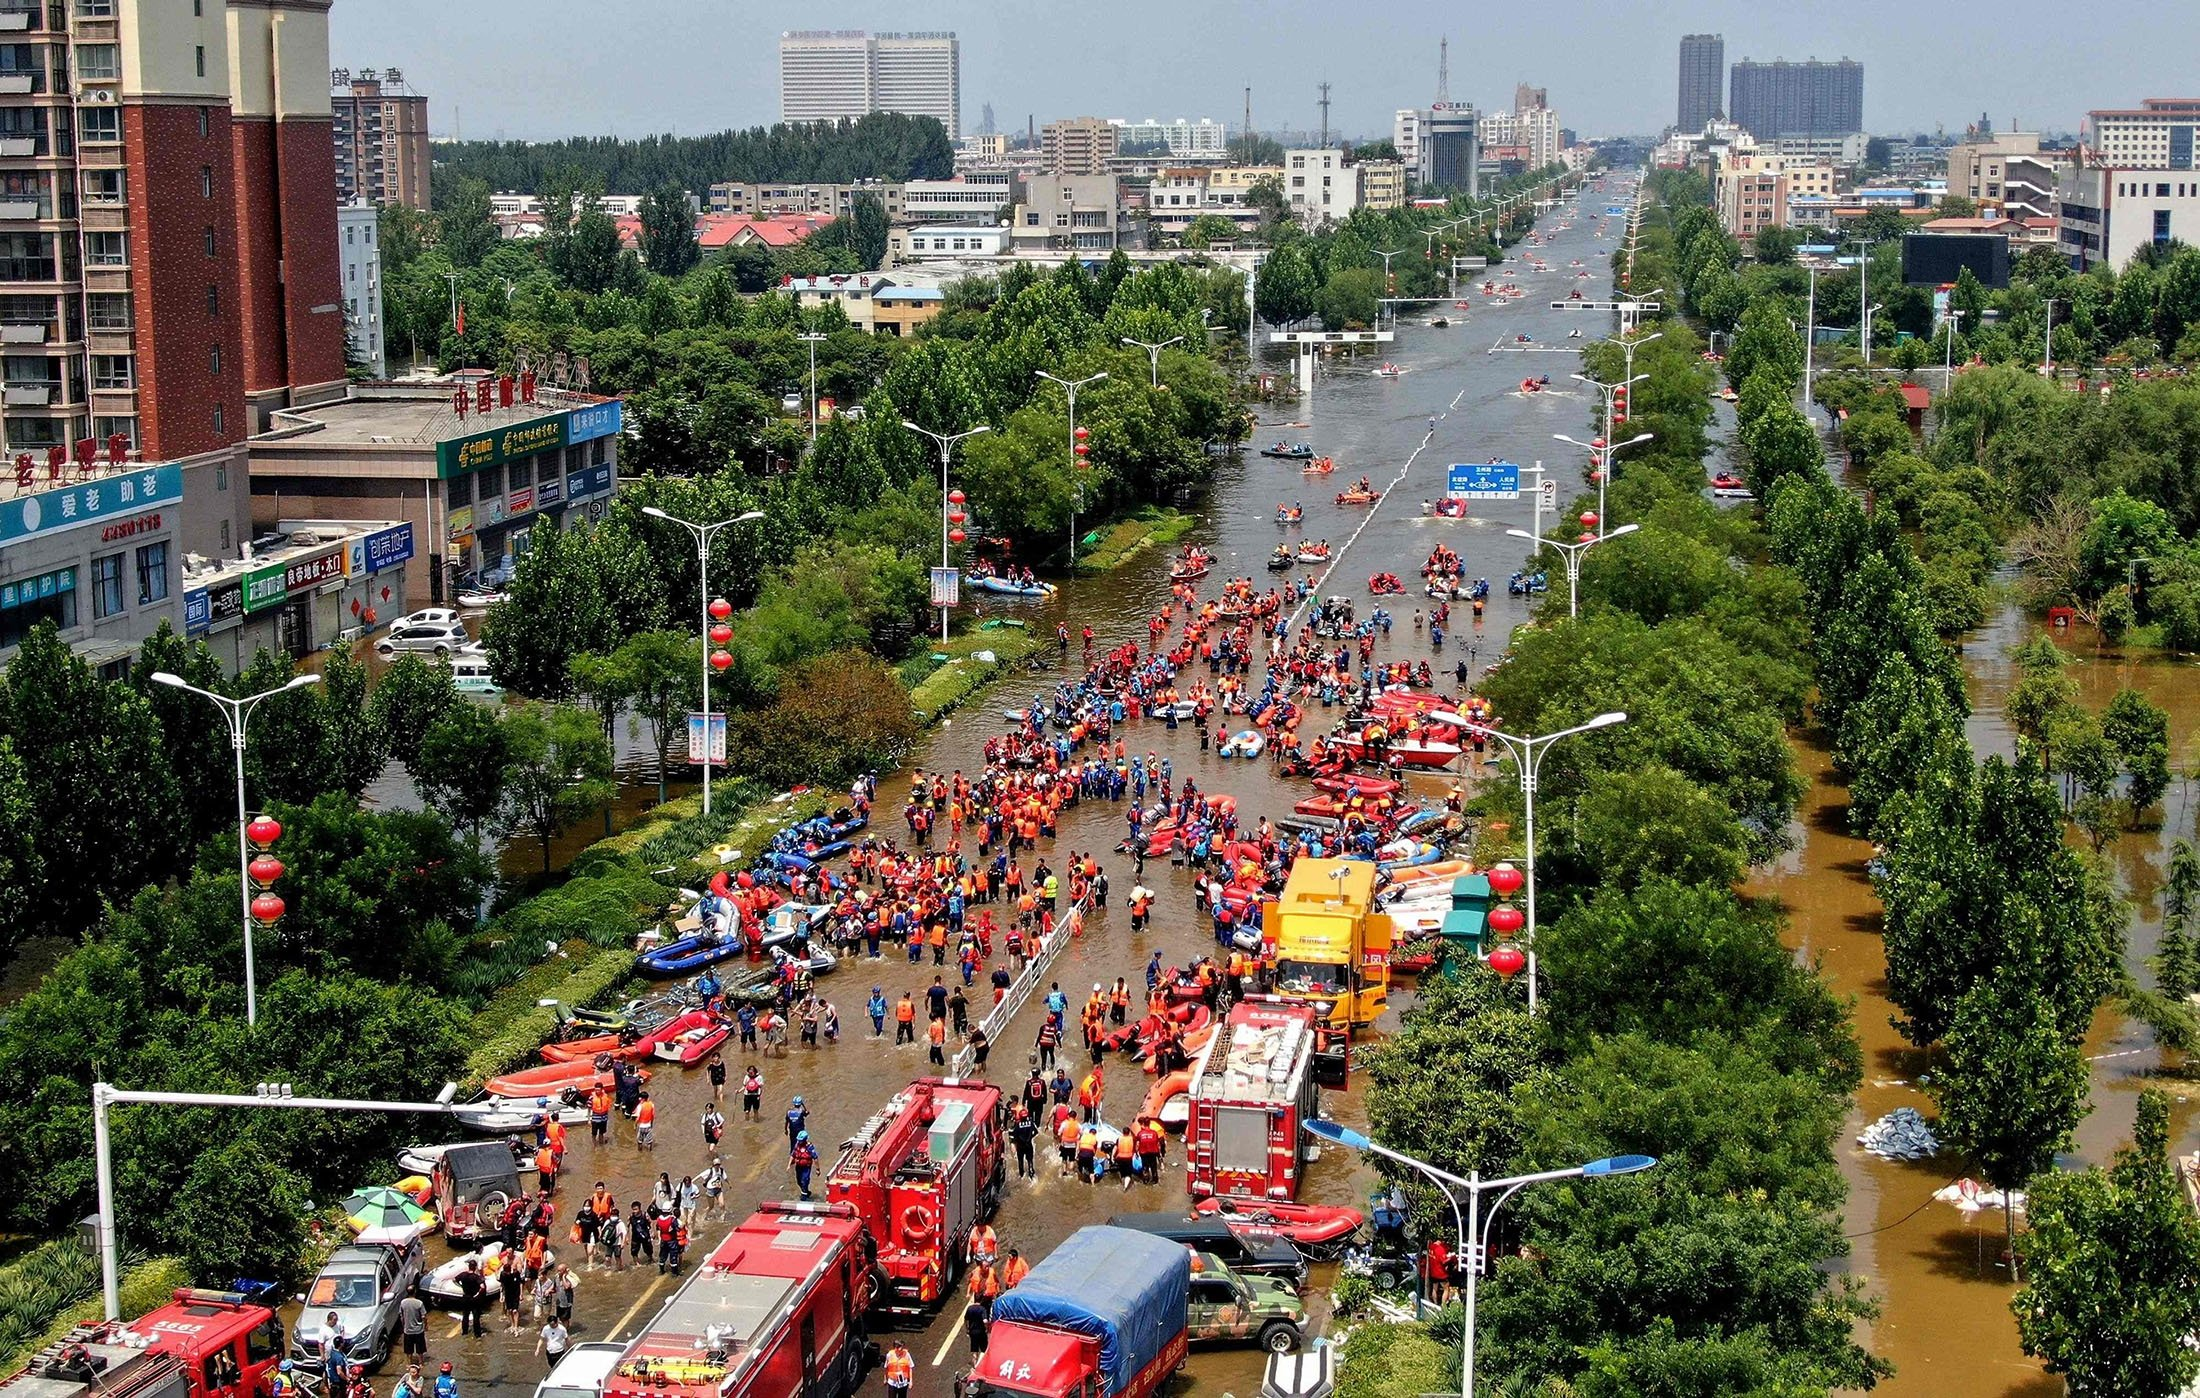 This aerial photo shows rescuers evacuating people at a flooded area in Weihui, Xinxiang city, in central Henan province, China, July 26, 2021. (AFP Photo)